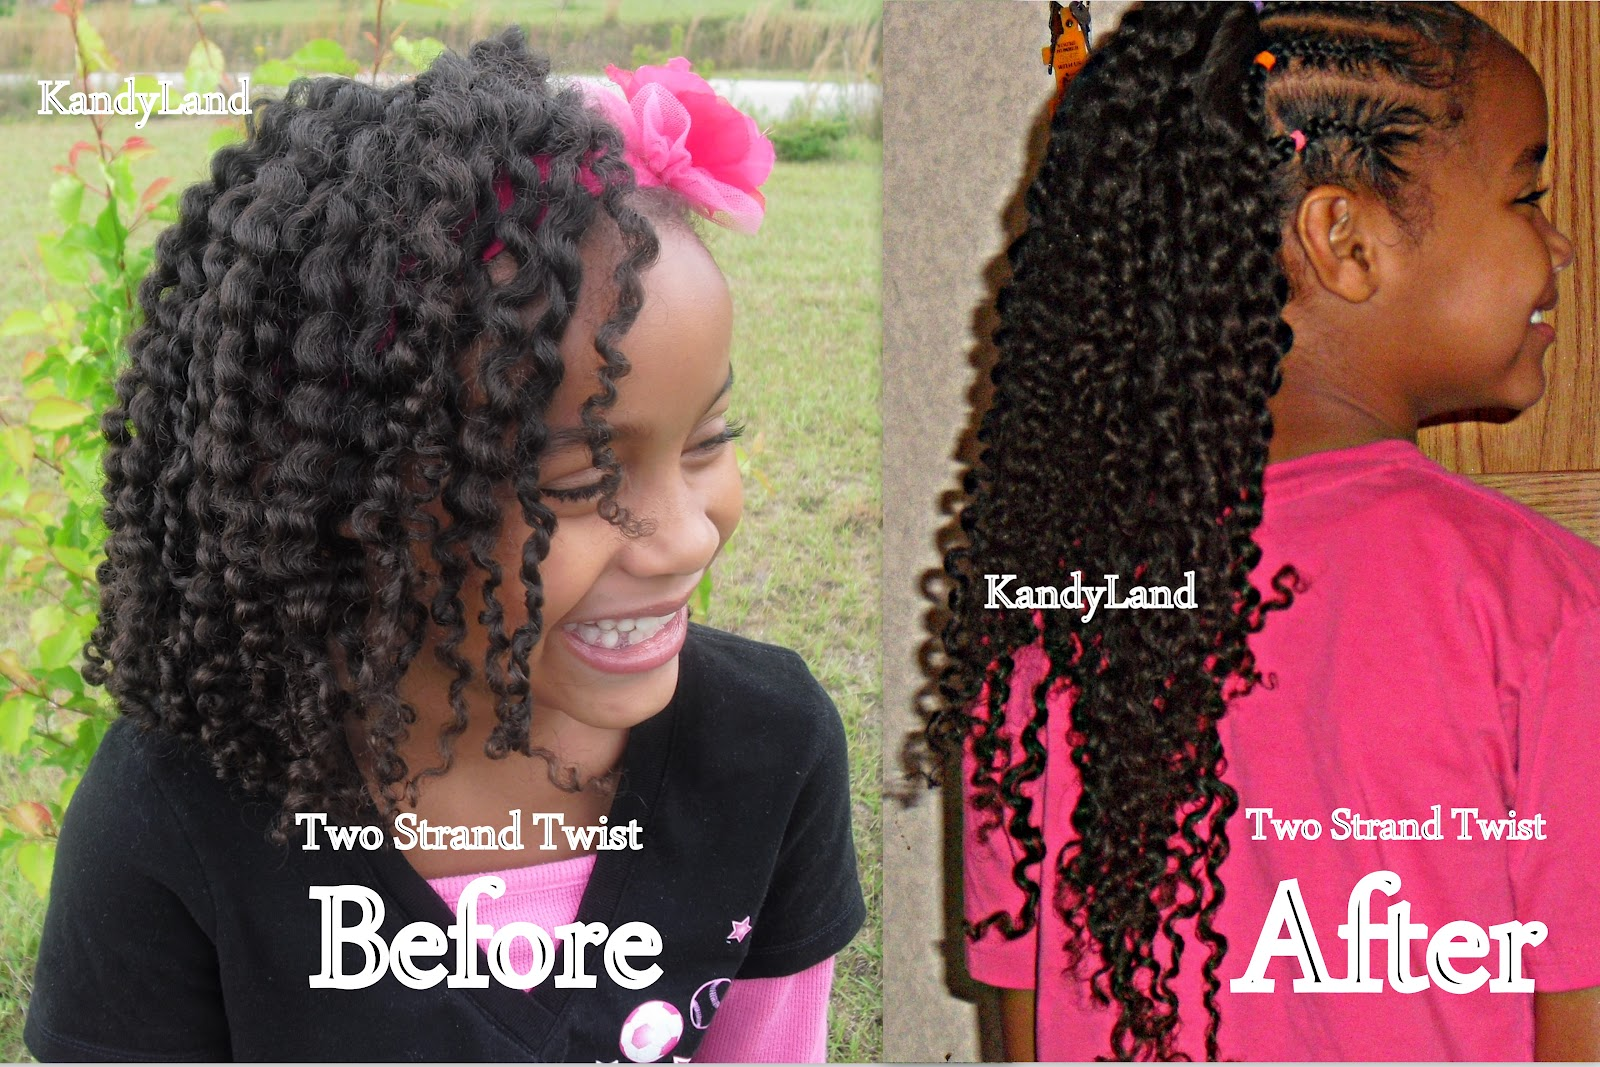 Fabulous Kandyland How To Elongate Your Twist Outs Short Hairstyles For Black Women Fulllsitofus